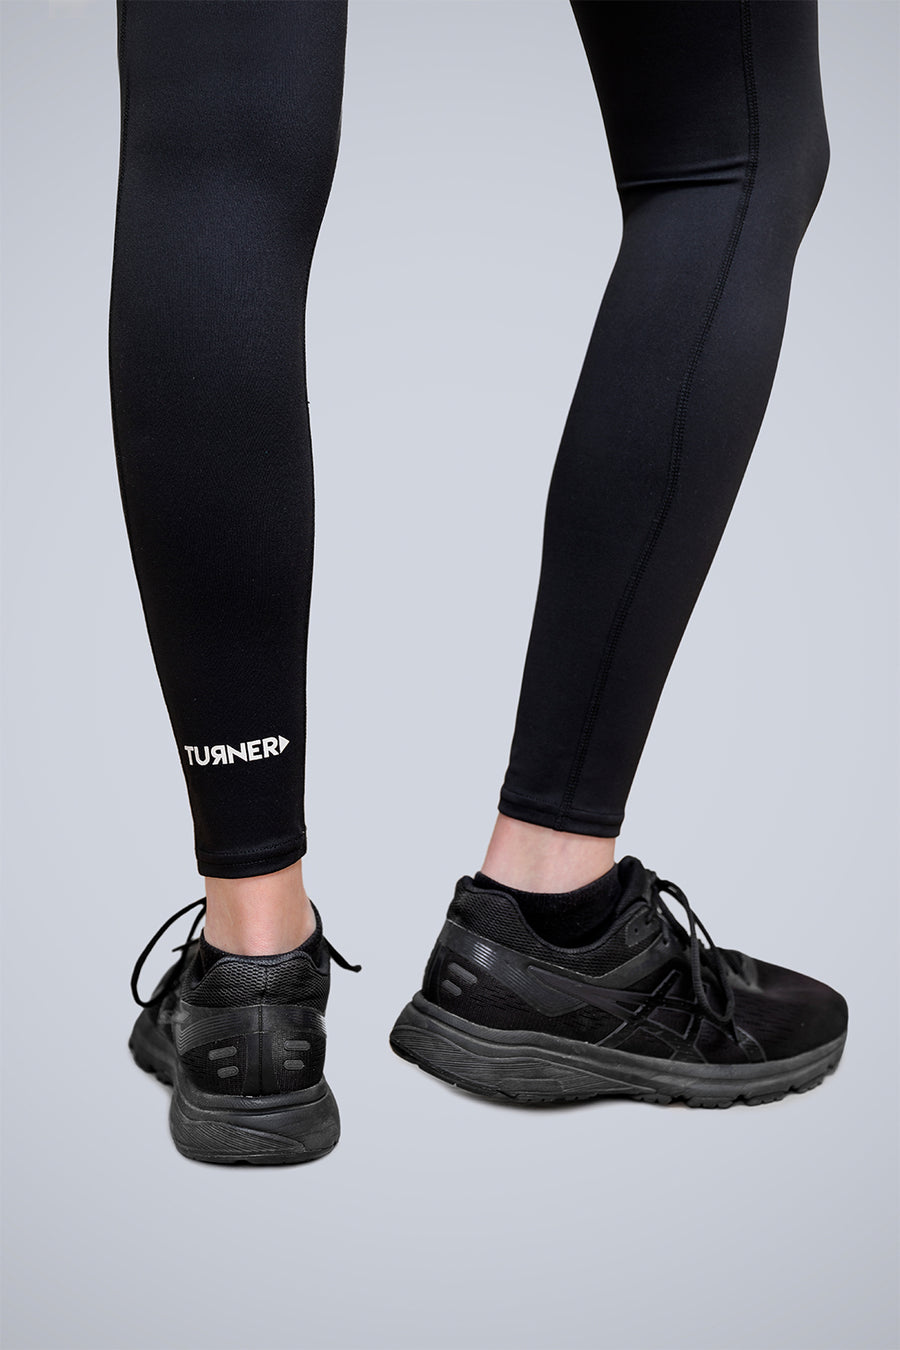 Women's Function One Black Full Length Leggings